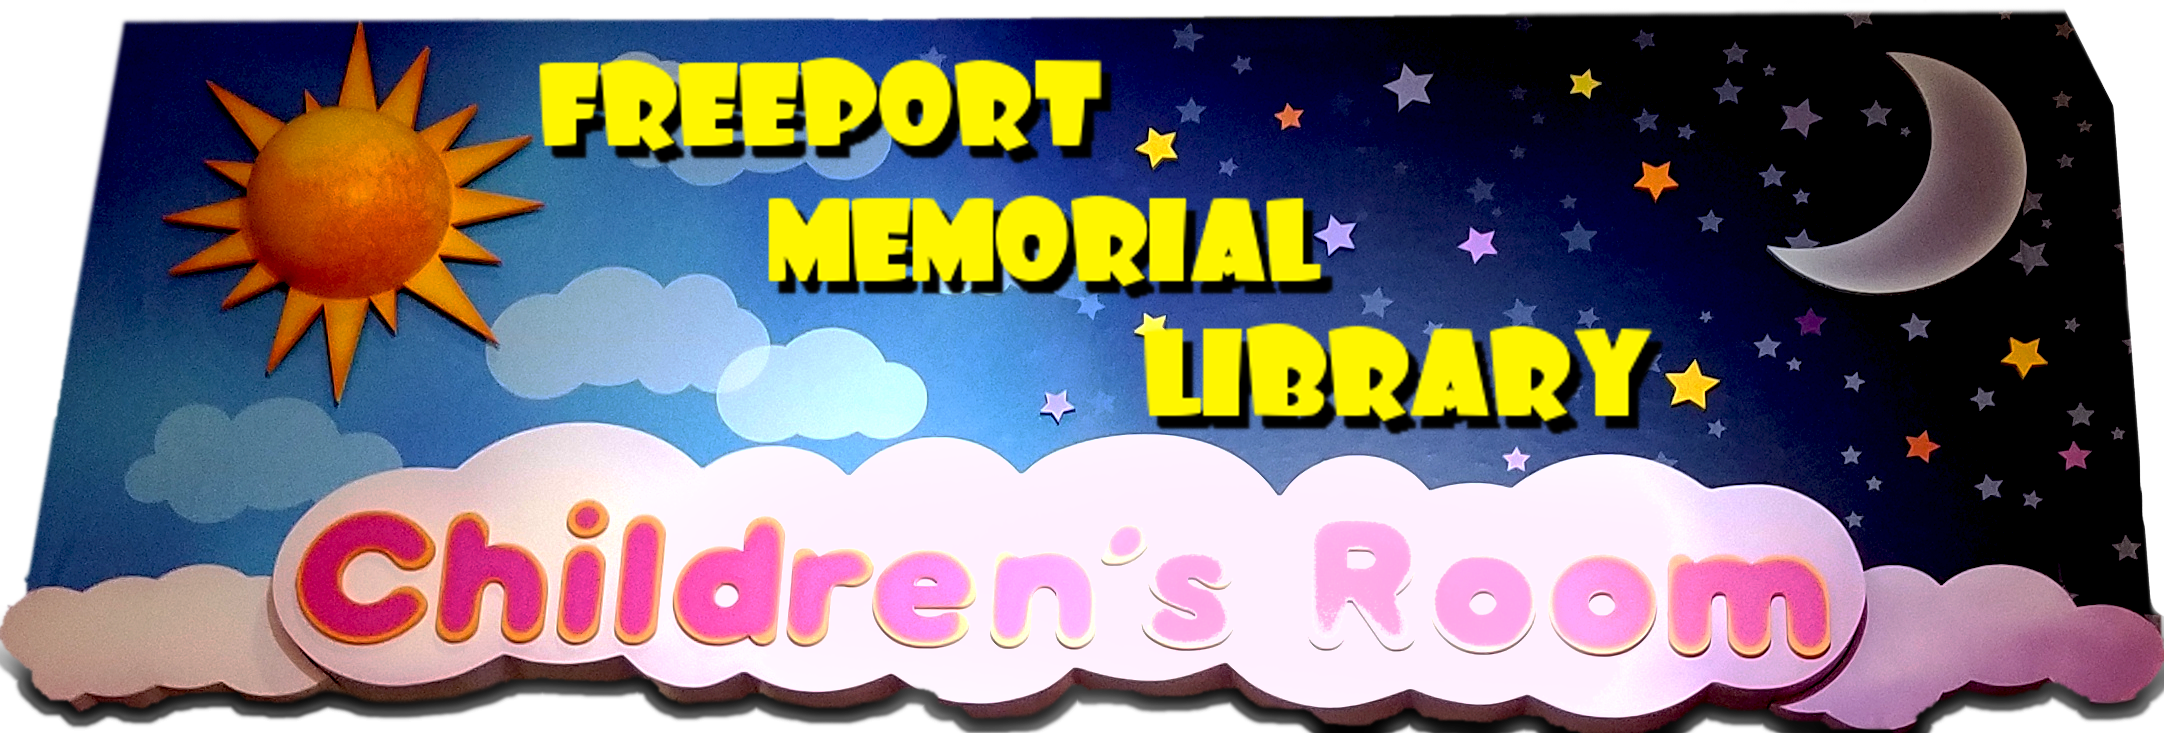 Freeport Memorial Library Children's Page Logo